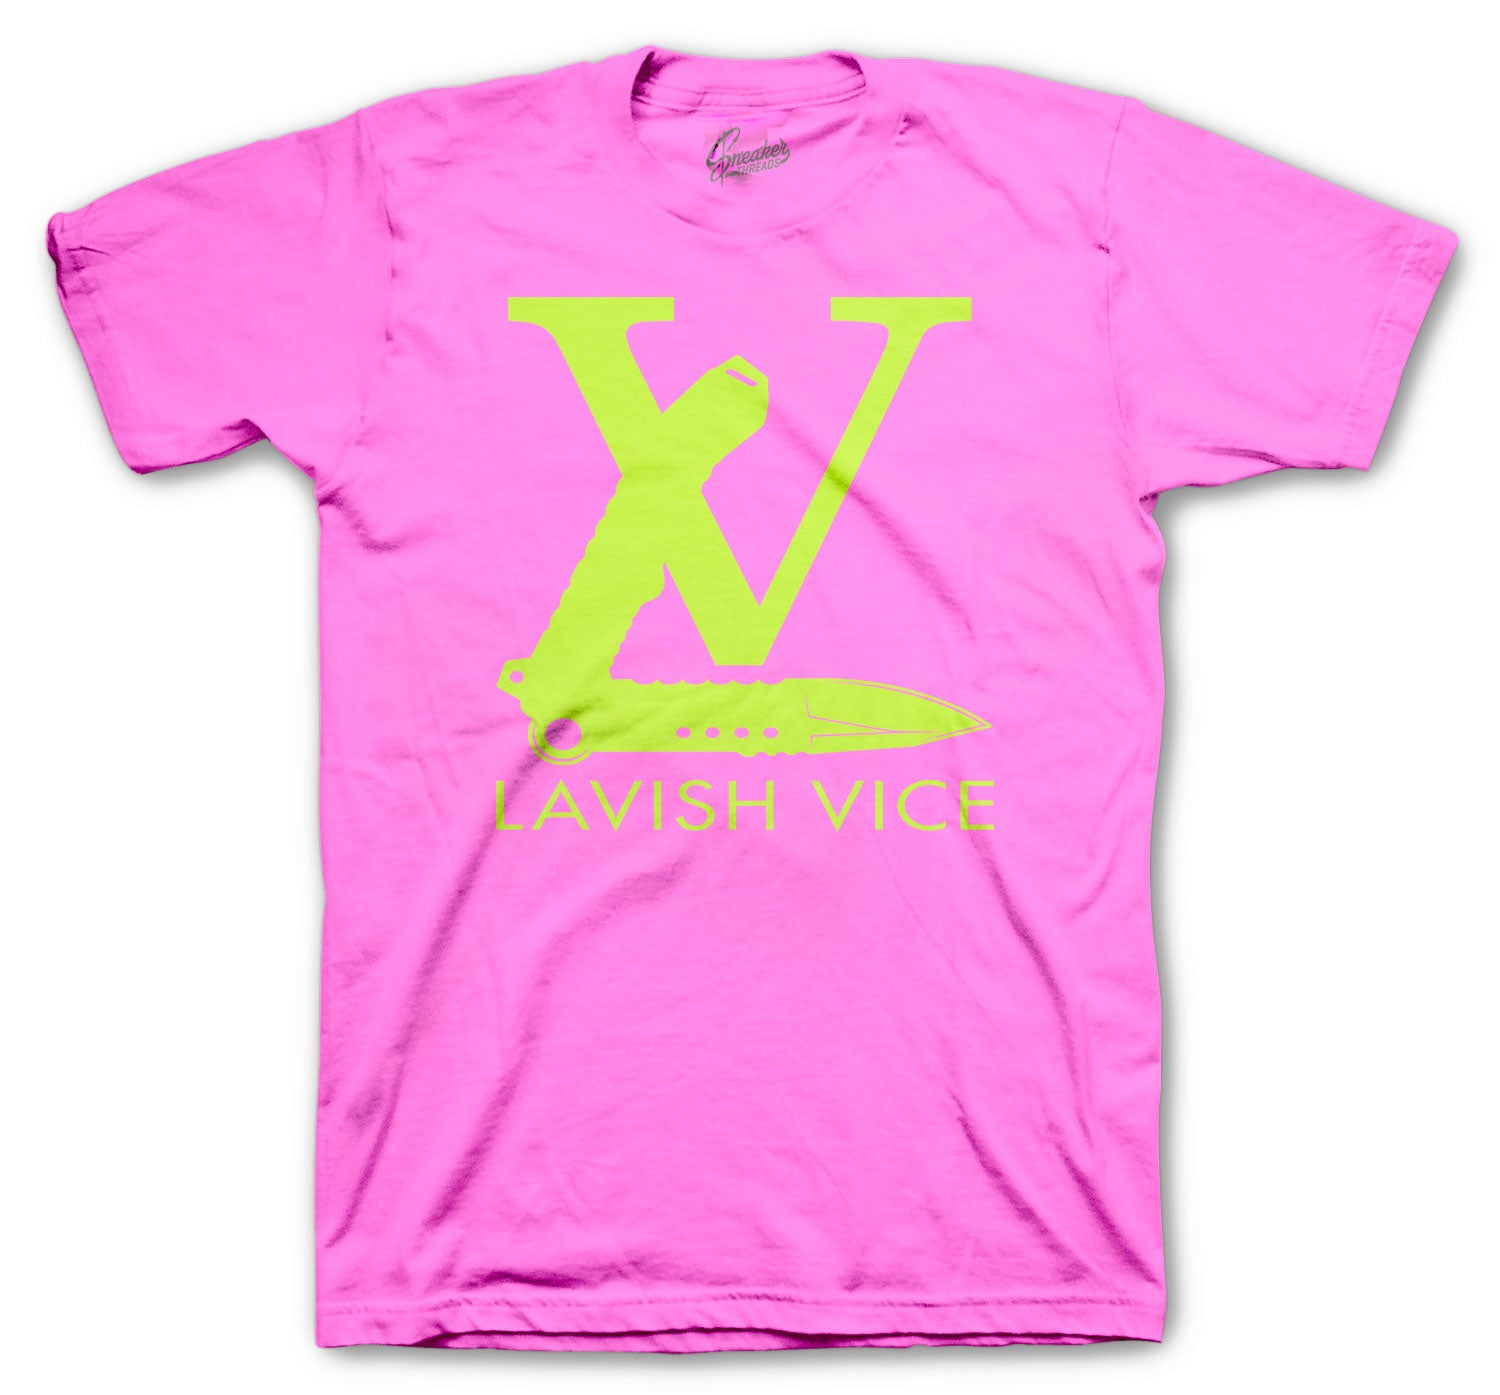 Lemon Venom Jordan 4 sneaker collection matches with mens t shirts